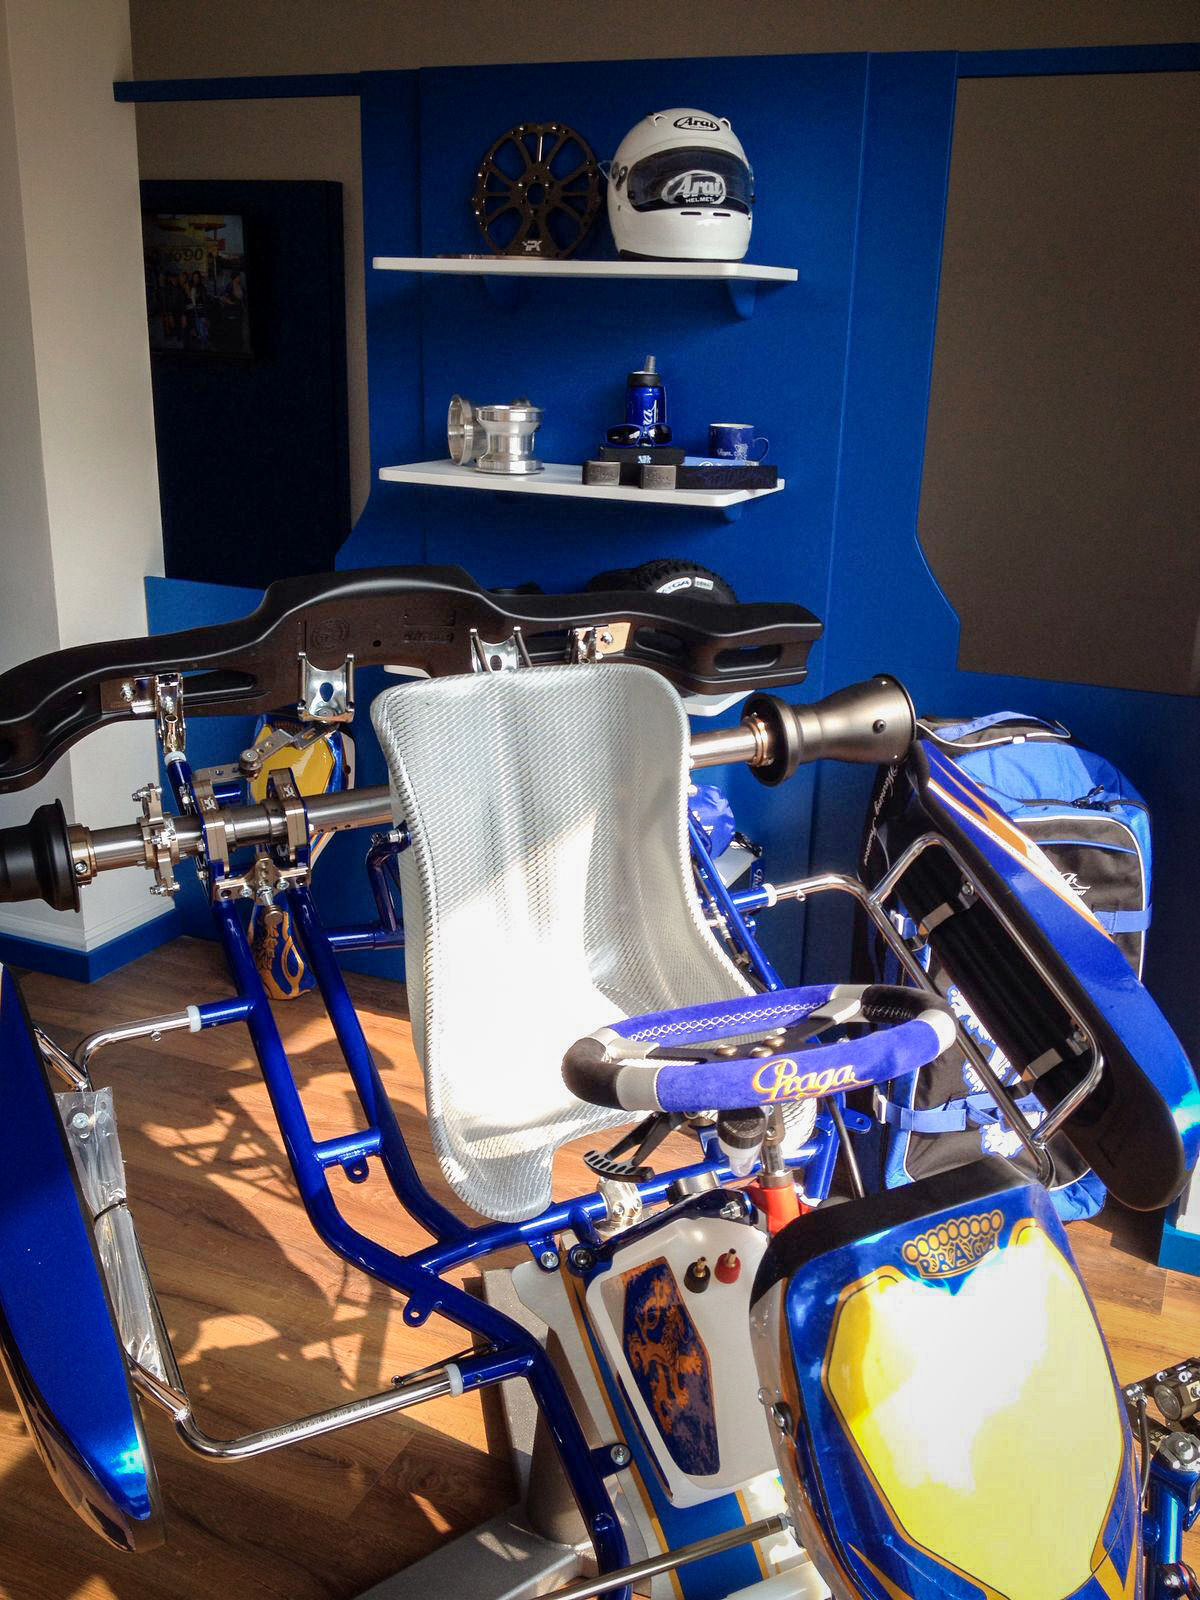 Visit a new Praga dealer by the Monza track in Italy